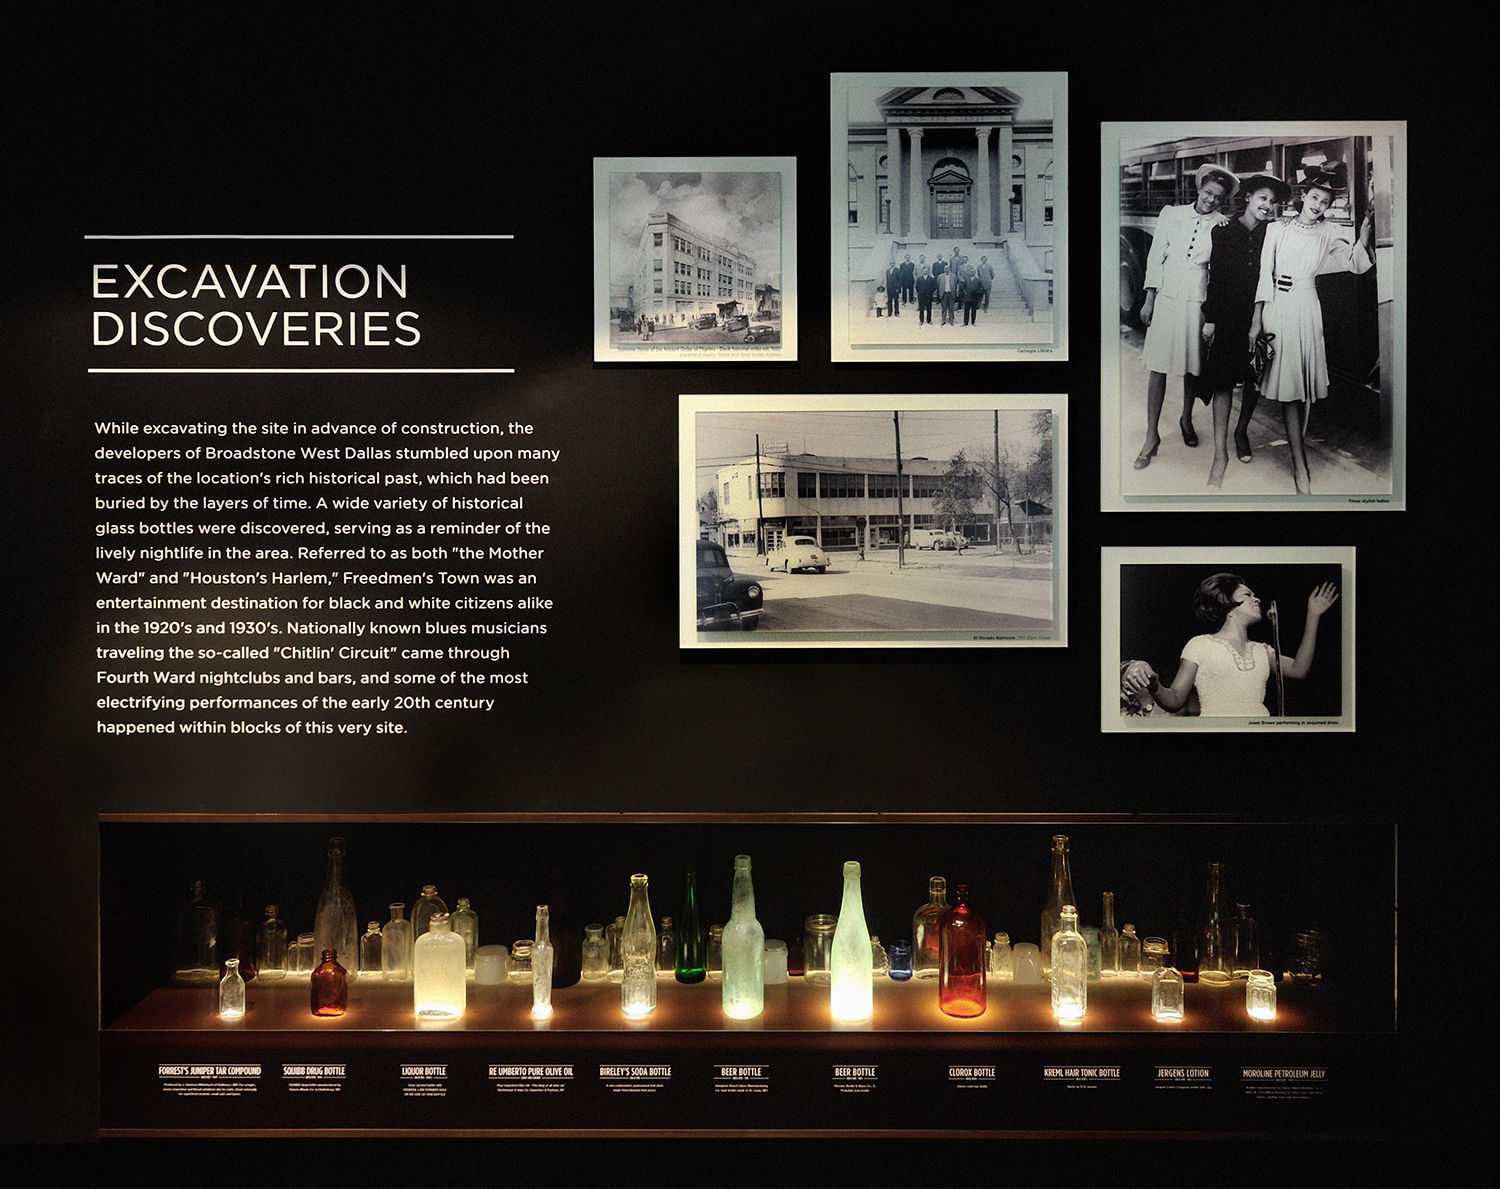 HISTORICAL DISPLAYS